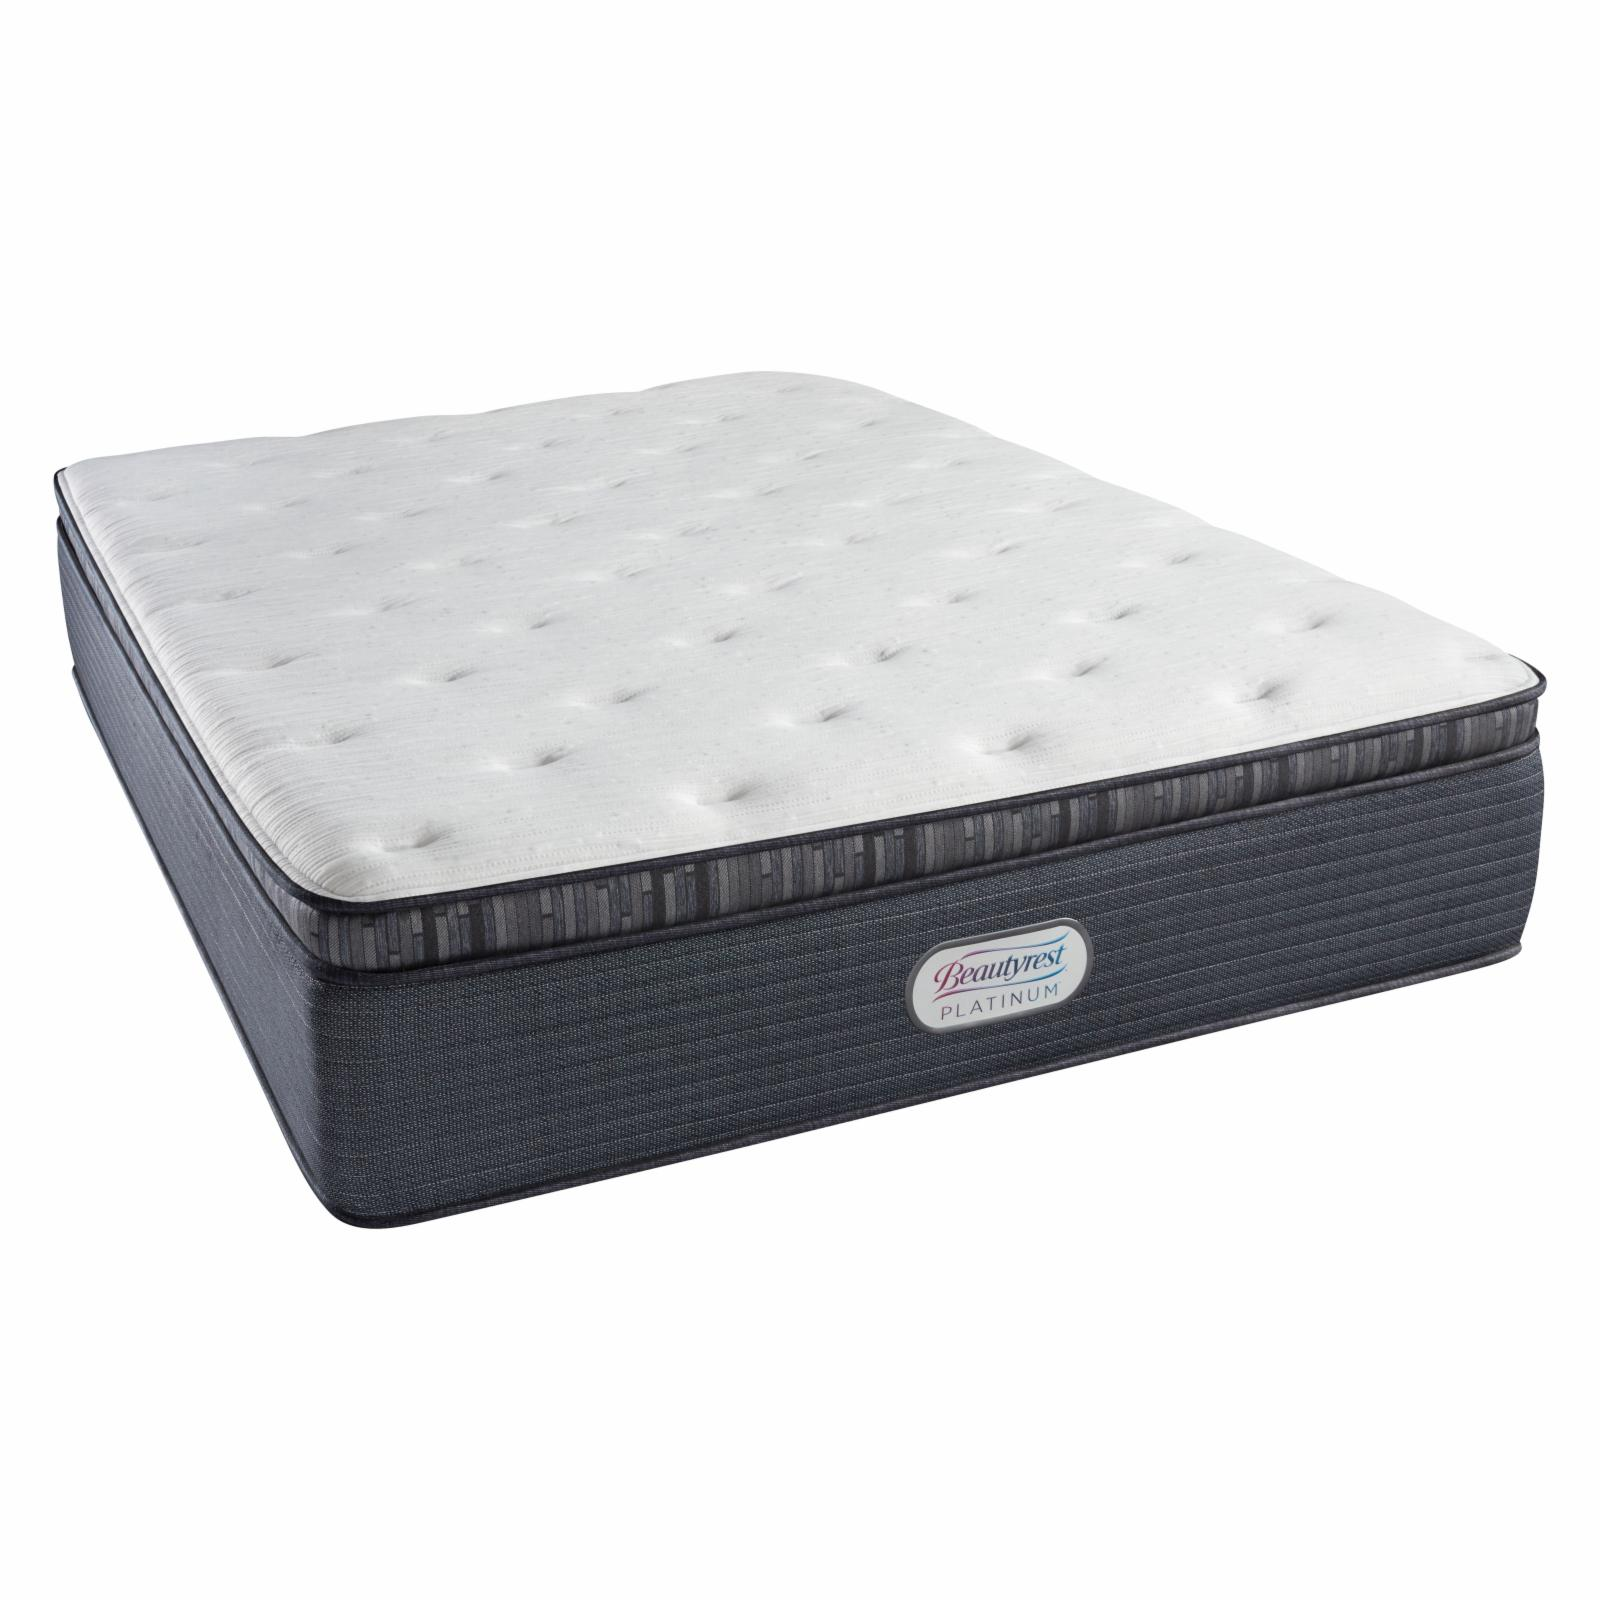 Beautyrest Platinum Spring Grove 15 in. Luxury Firm Pillow Top Mattress - 700800104-9870